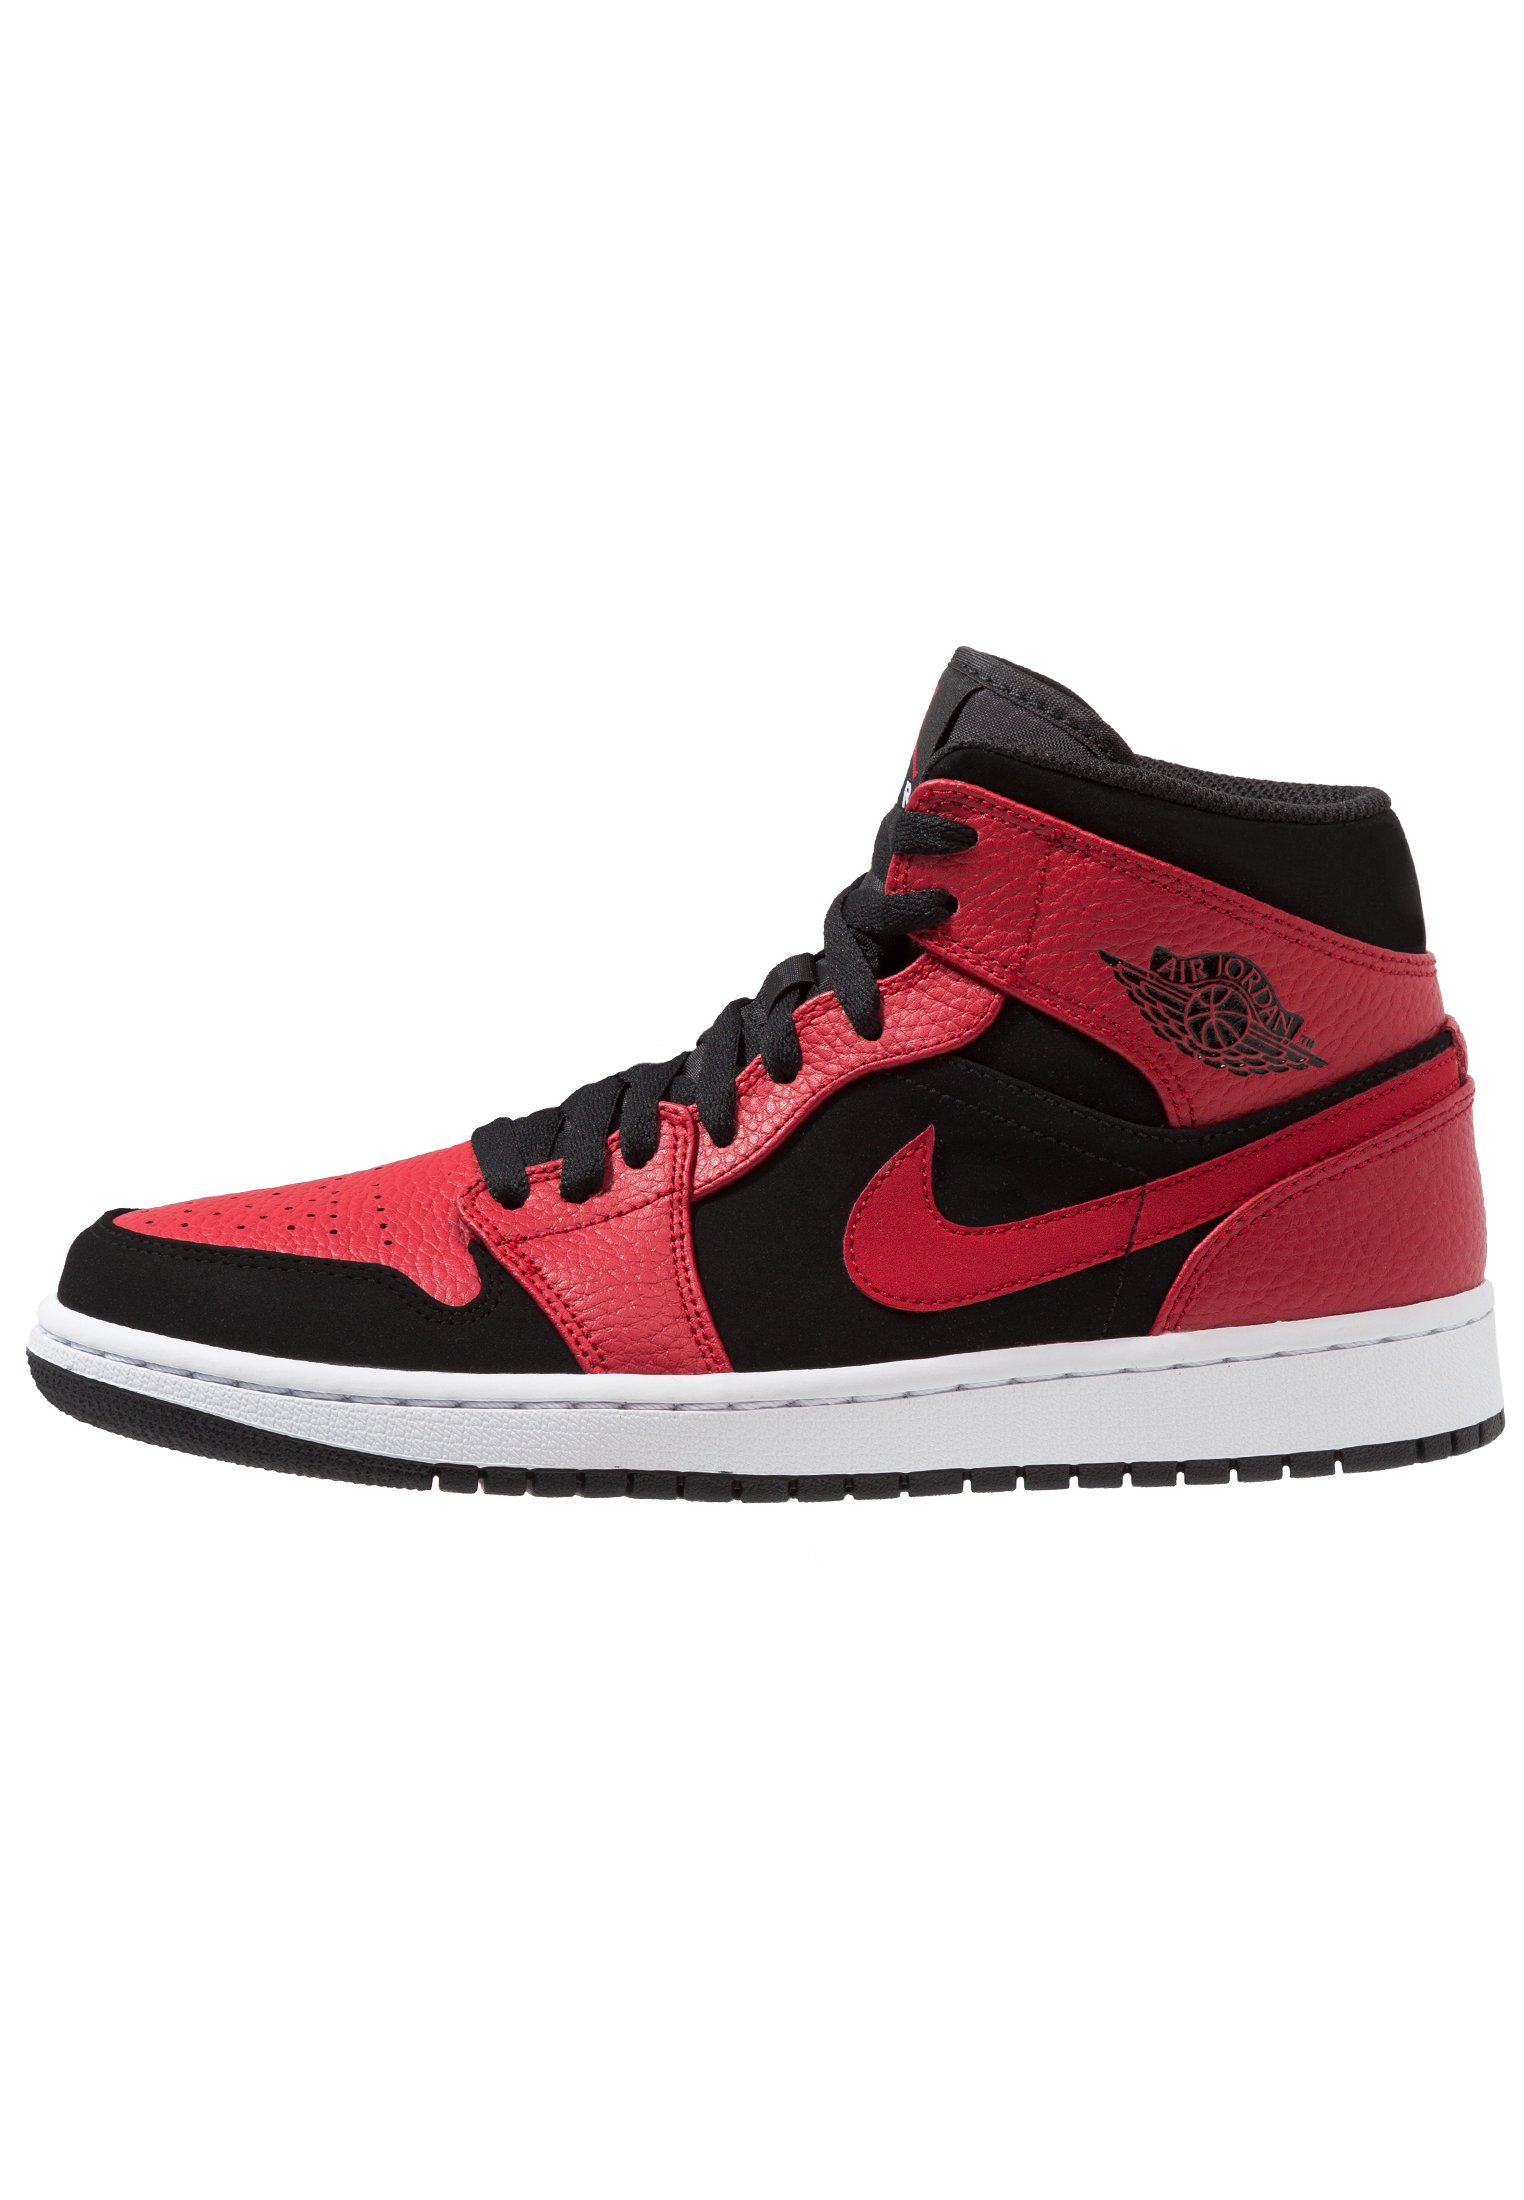 nike air rosse alte